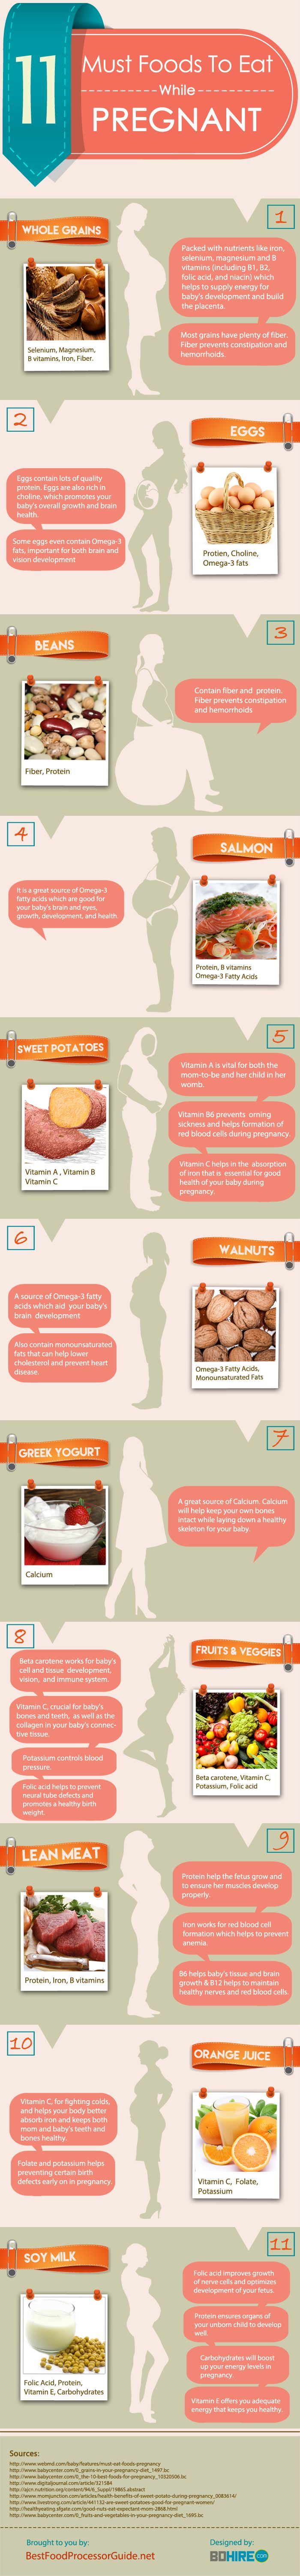 11 Must Foods To Eat While Pregnant #Infographic